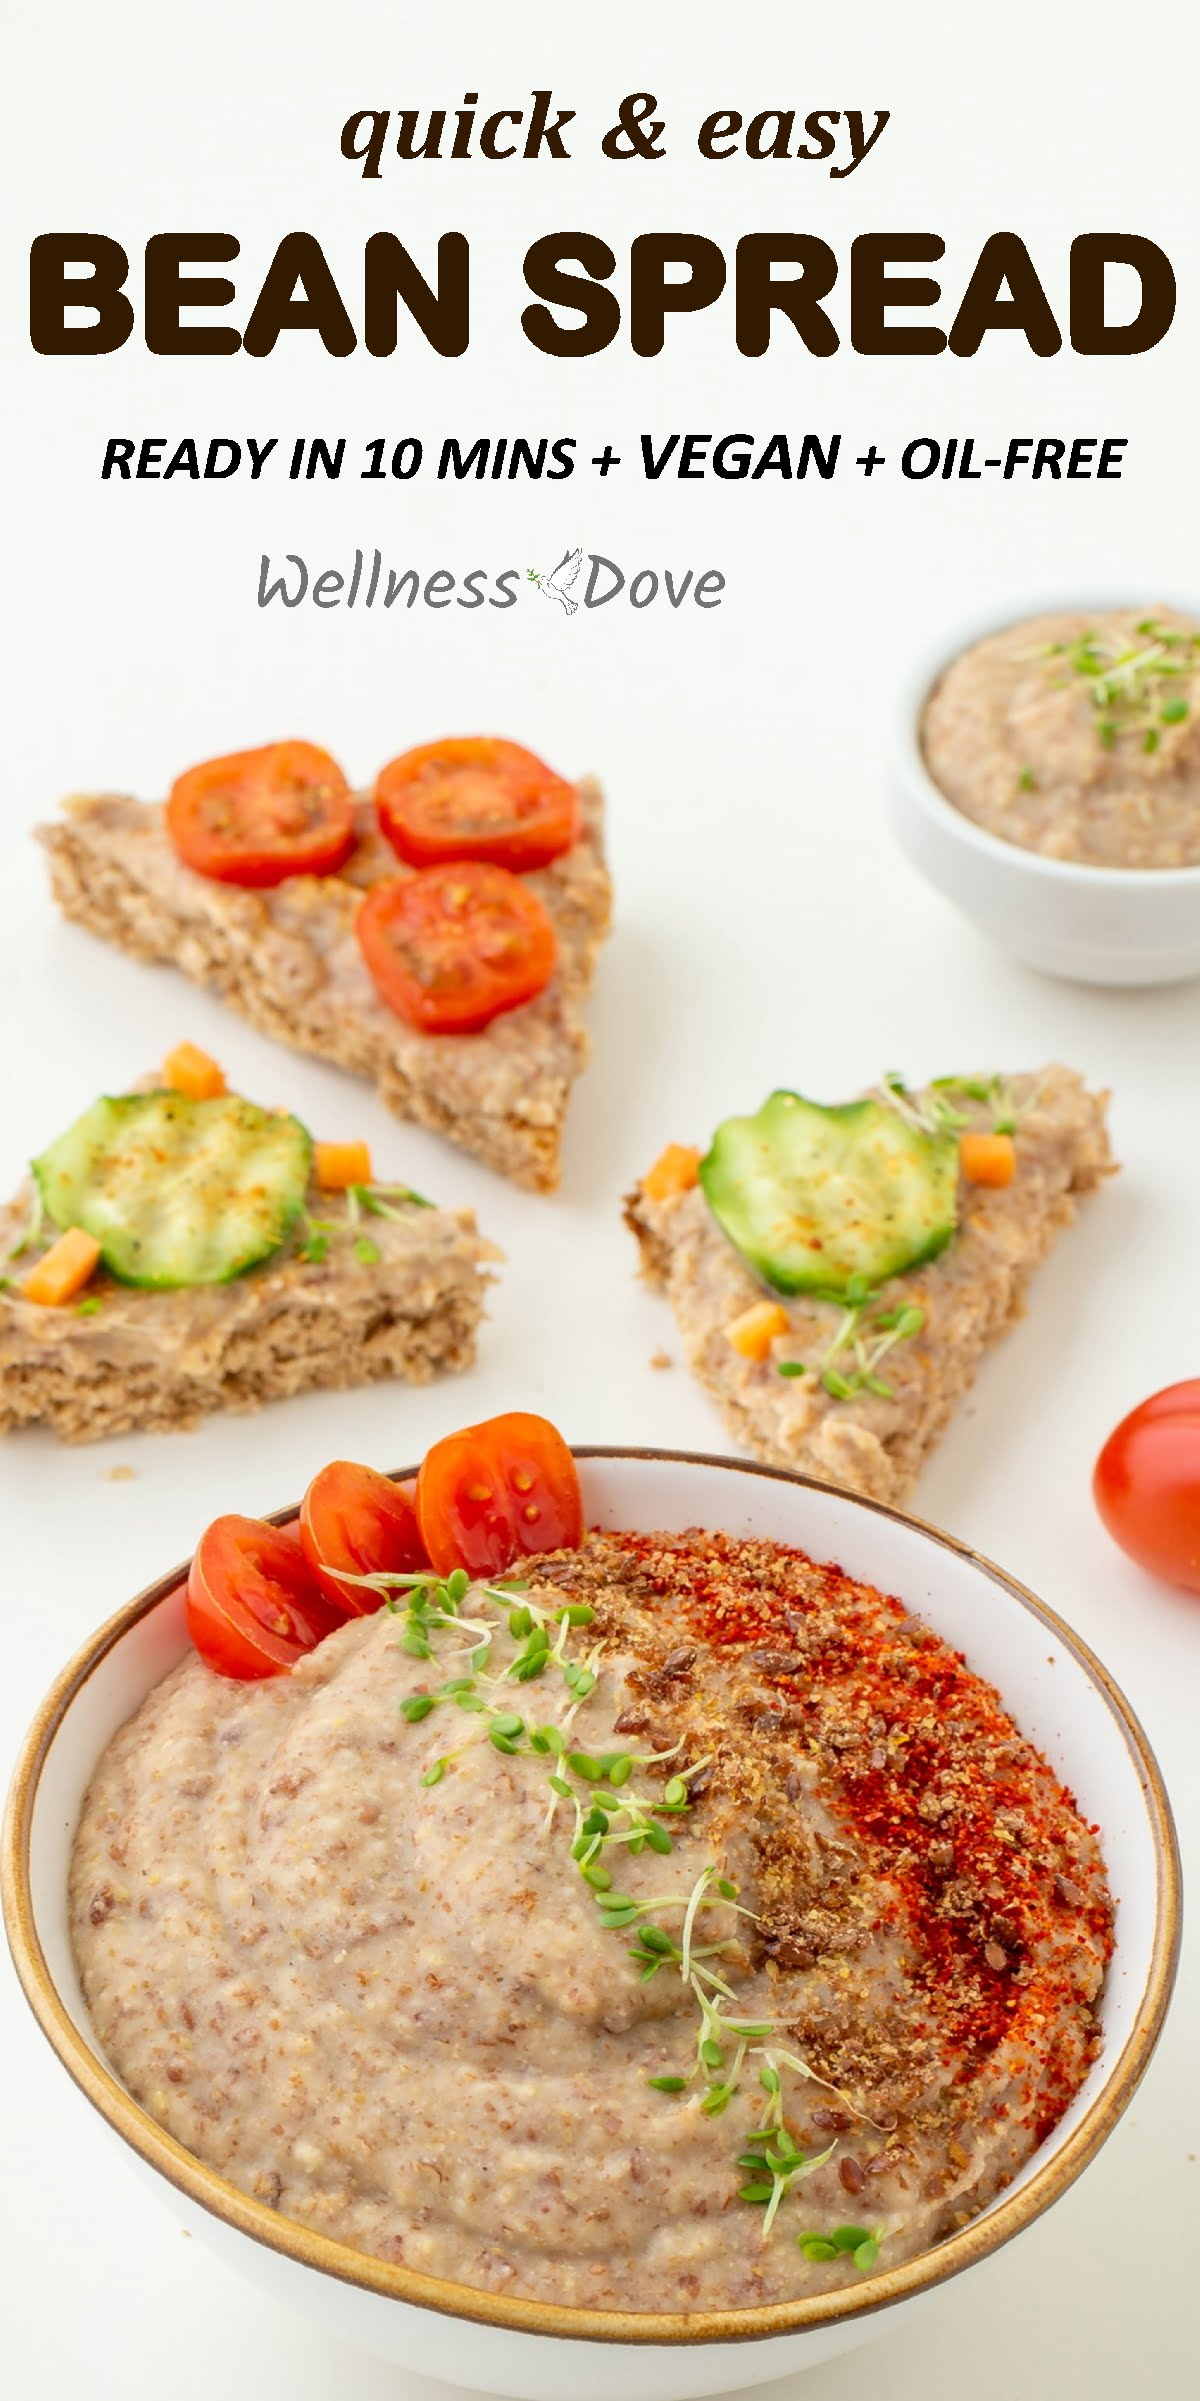 A super easy spread that is truly tasty. It might be simple but is whole food, plant based and thus superbly healthy. The spices I used are actually nutritional powerhouses that give this spread quite an enticing aroma. Enjoy this vegan spread on a loaf of whole wheat bread, in your burrito or on a leaf of lettuce. It will help you stay healthy and lose weight as well!